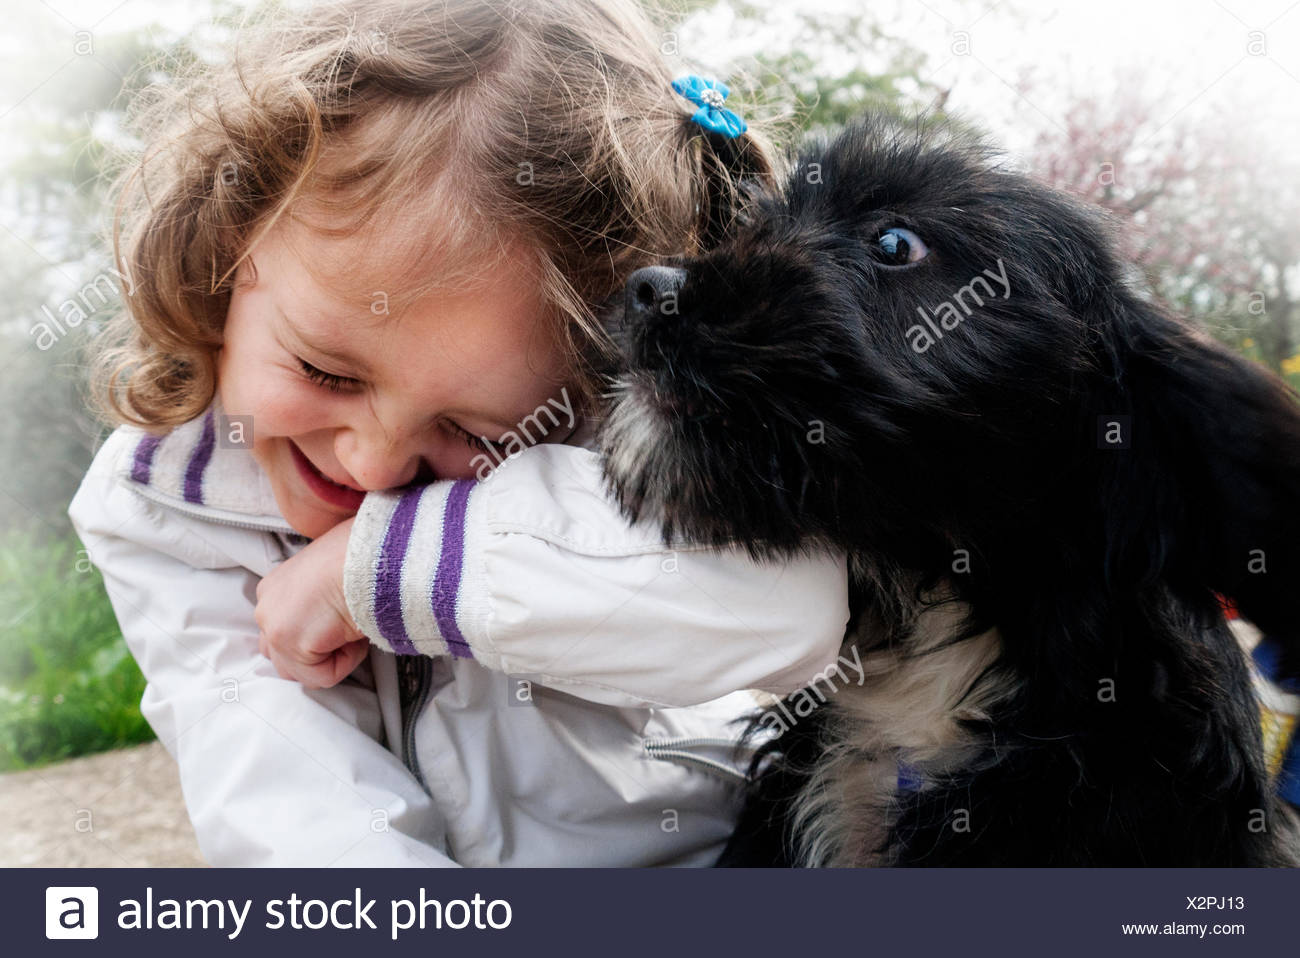 Italy, Little girl (4-5) playing with puppy - Stock Image